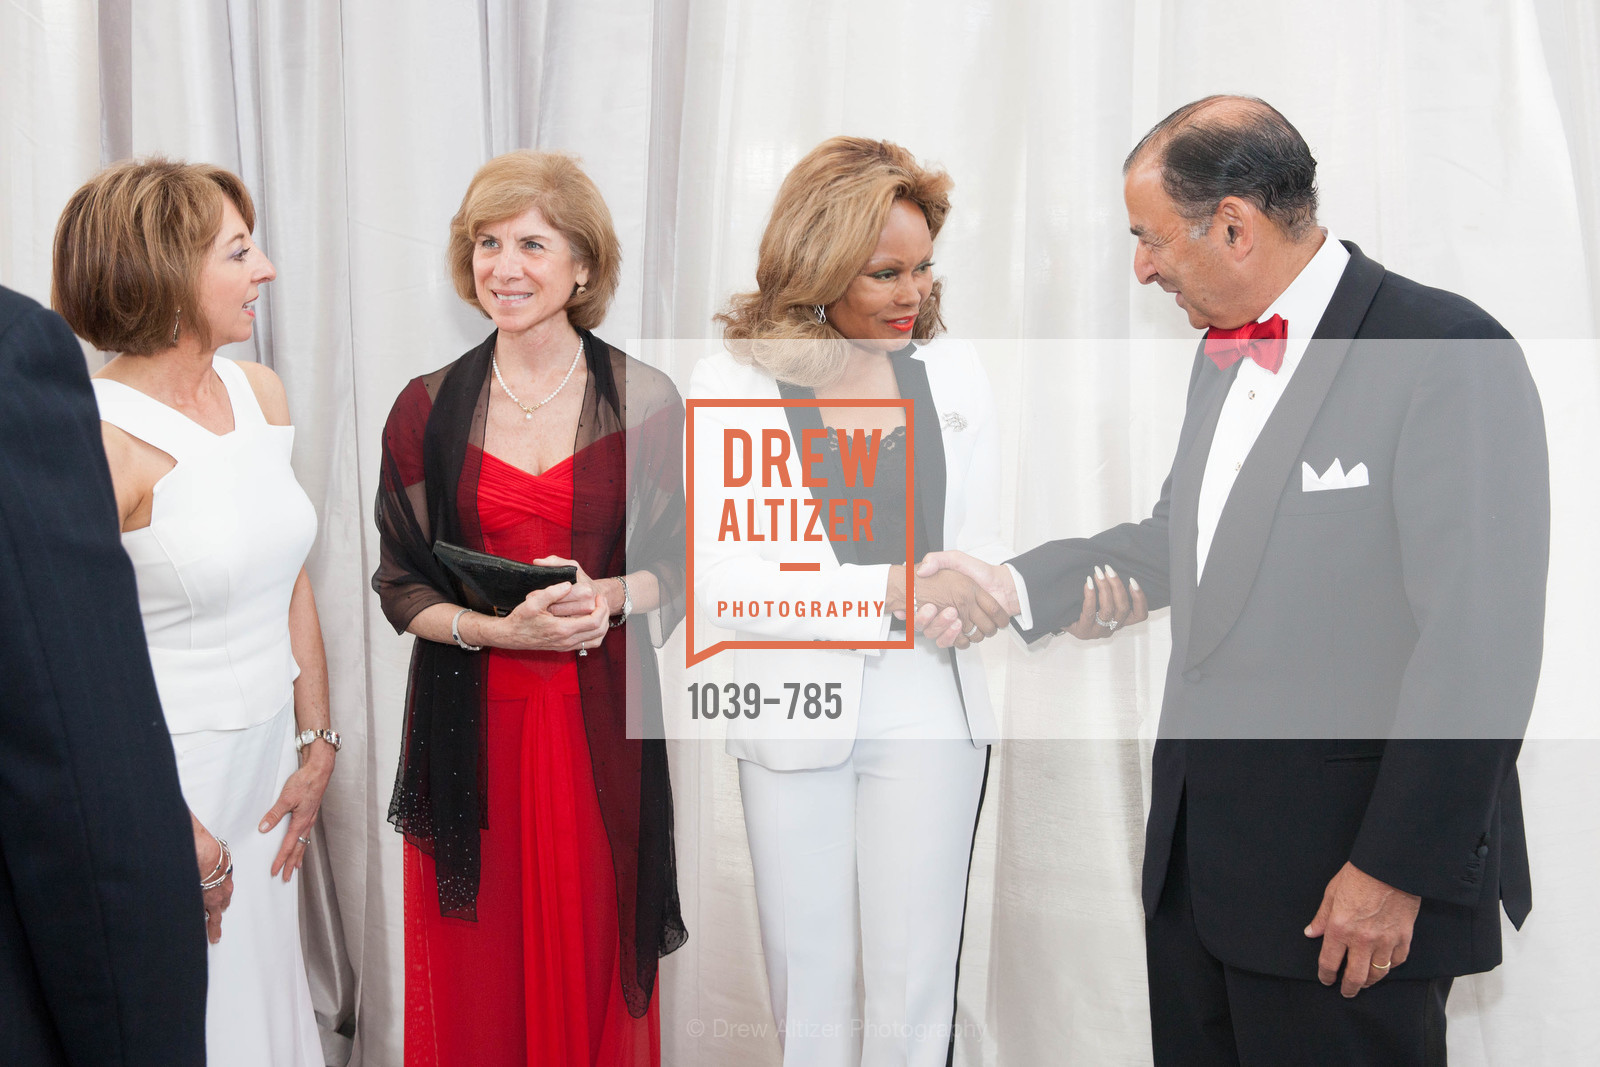 Teresa Briggs, Gail McGovern, Janice Bryant Howroyd, 2015 RED CROSS Gala, US, April 12th, 2015,Drew Altizer, Drew Altizer Photography, full-service agency, private events, San Francisco photographer, photographer california